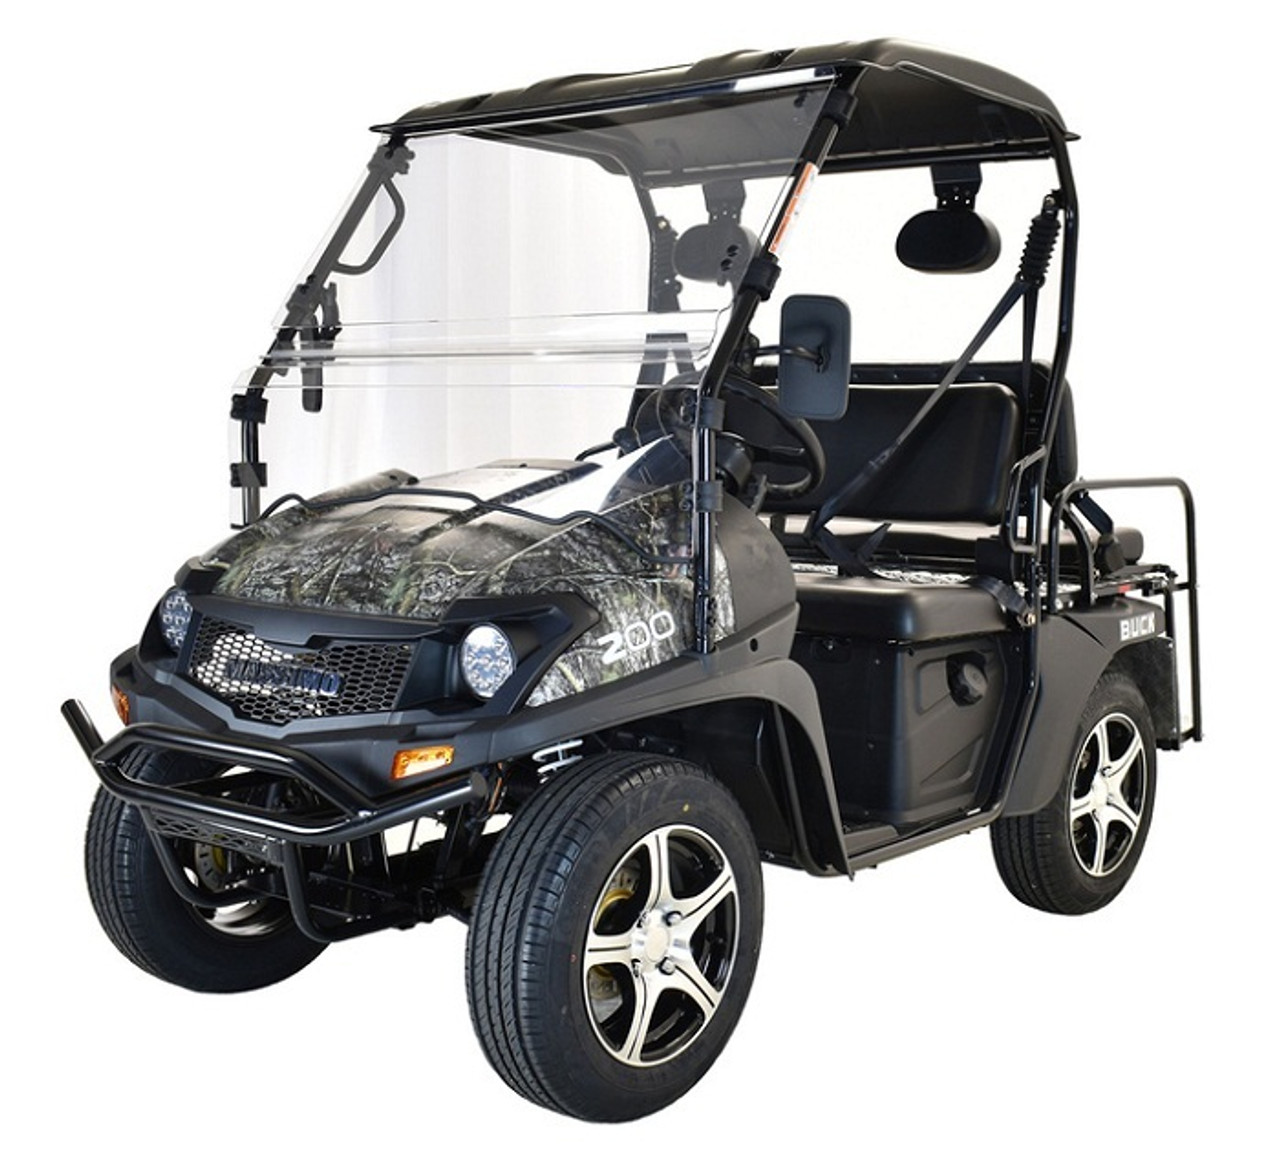 BLACK - MASSIMO BUCK 200X UTV, 177cc Four-Stroke, Single Cylinder